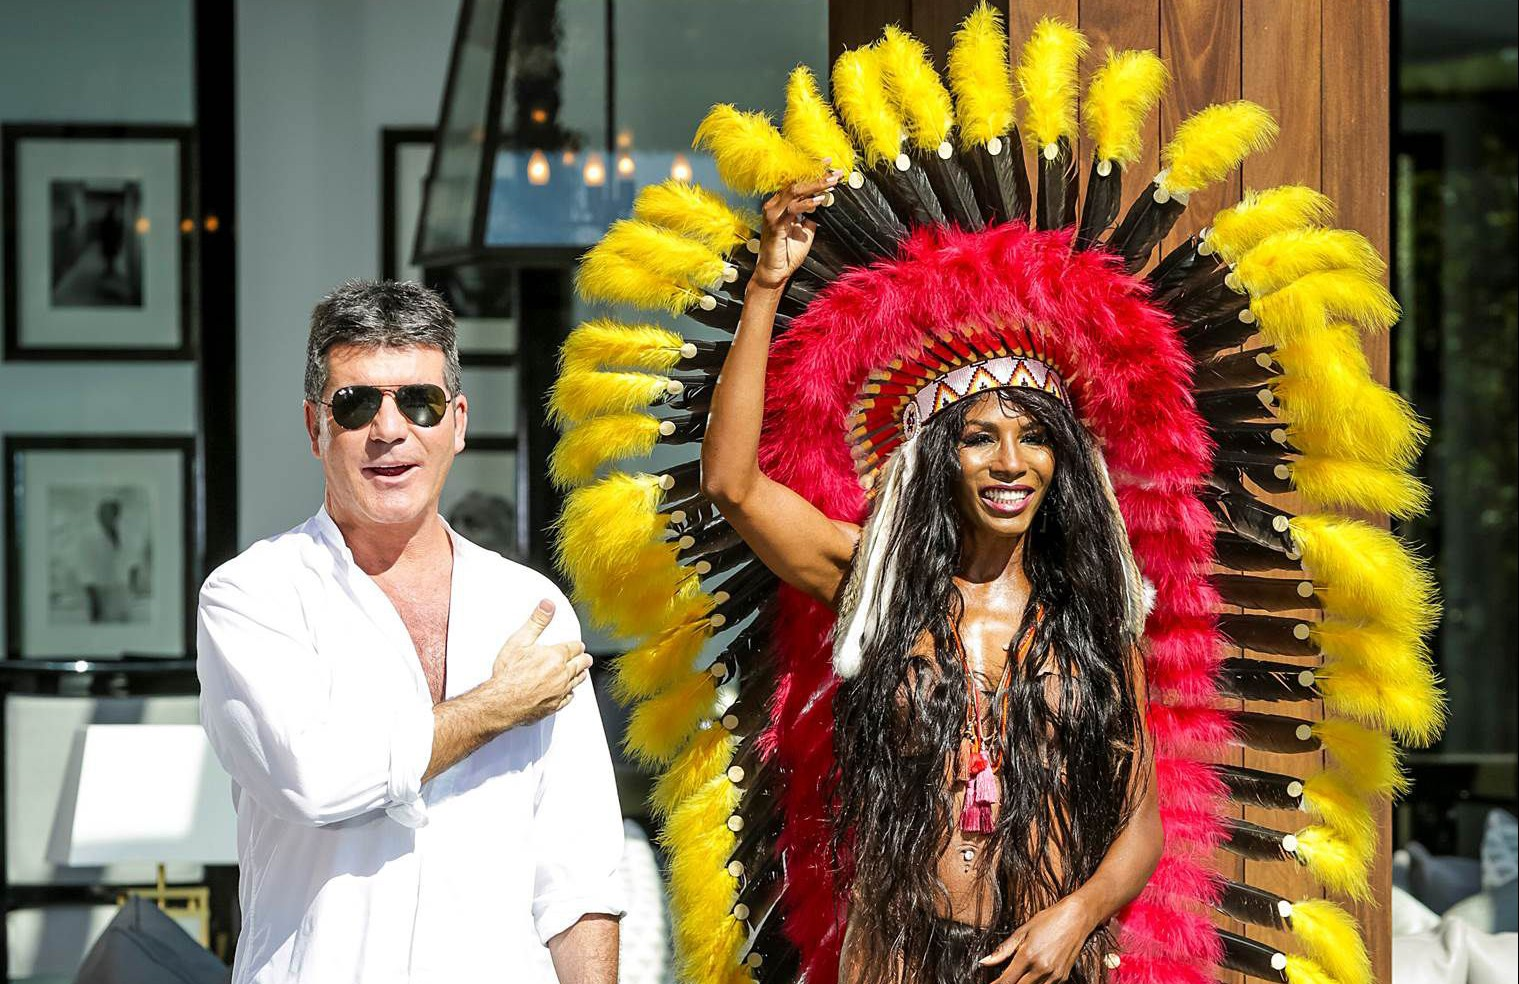 Sinitta accused of fixing The X Factor after returning duo make it to Judges' Houses